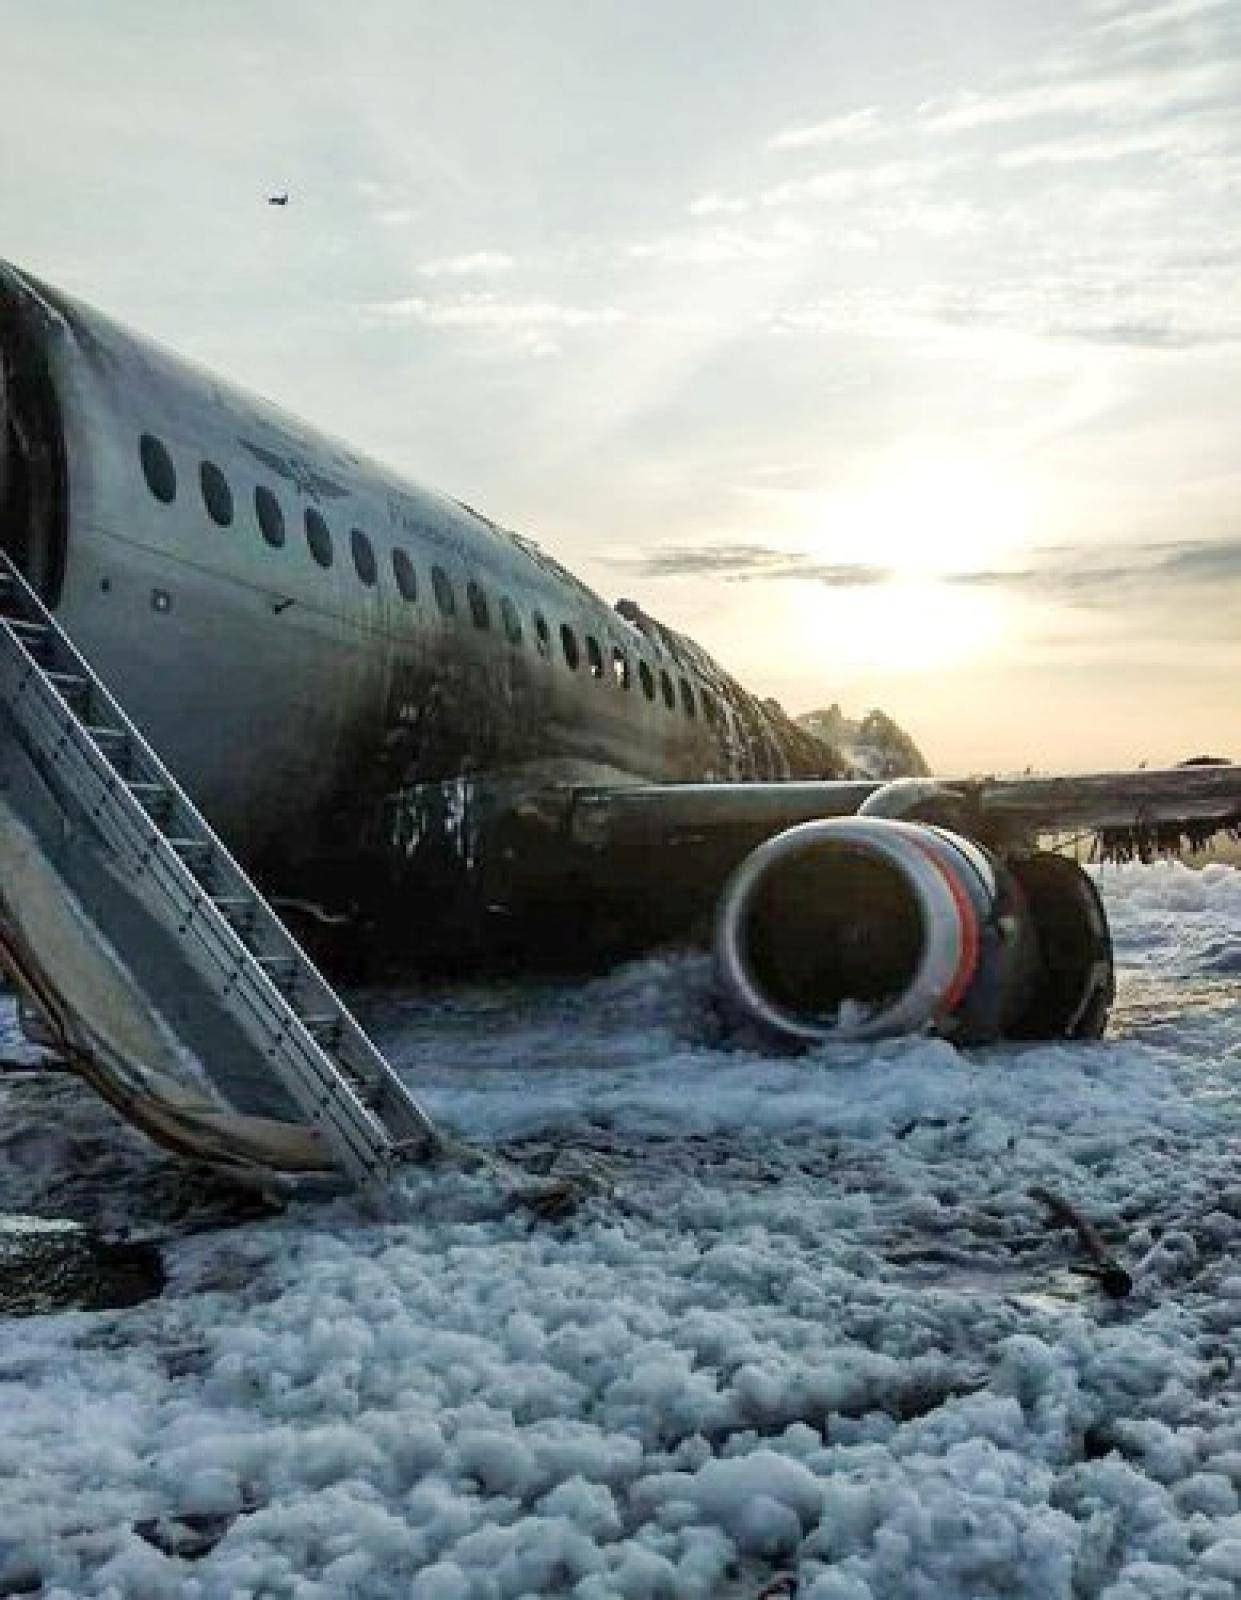 A view shows a damaged Aeroflot Sukhoi Superjet 100 passenger plane after an emergency landing at Moscow's Sheremetyevo airport